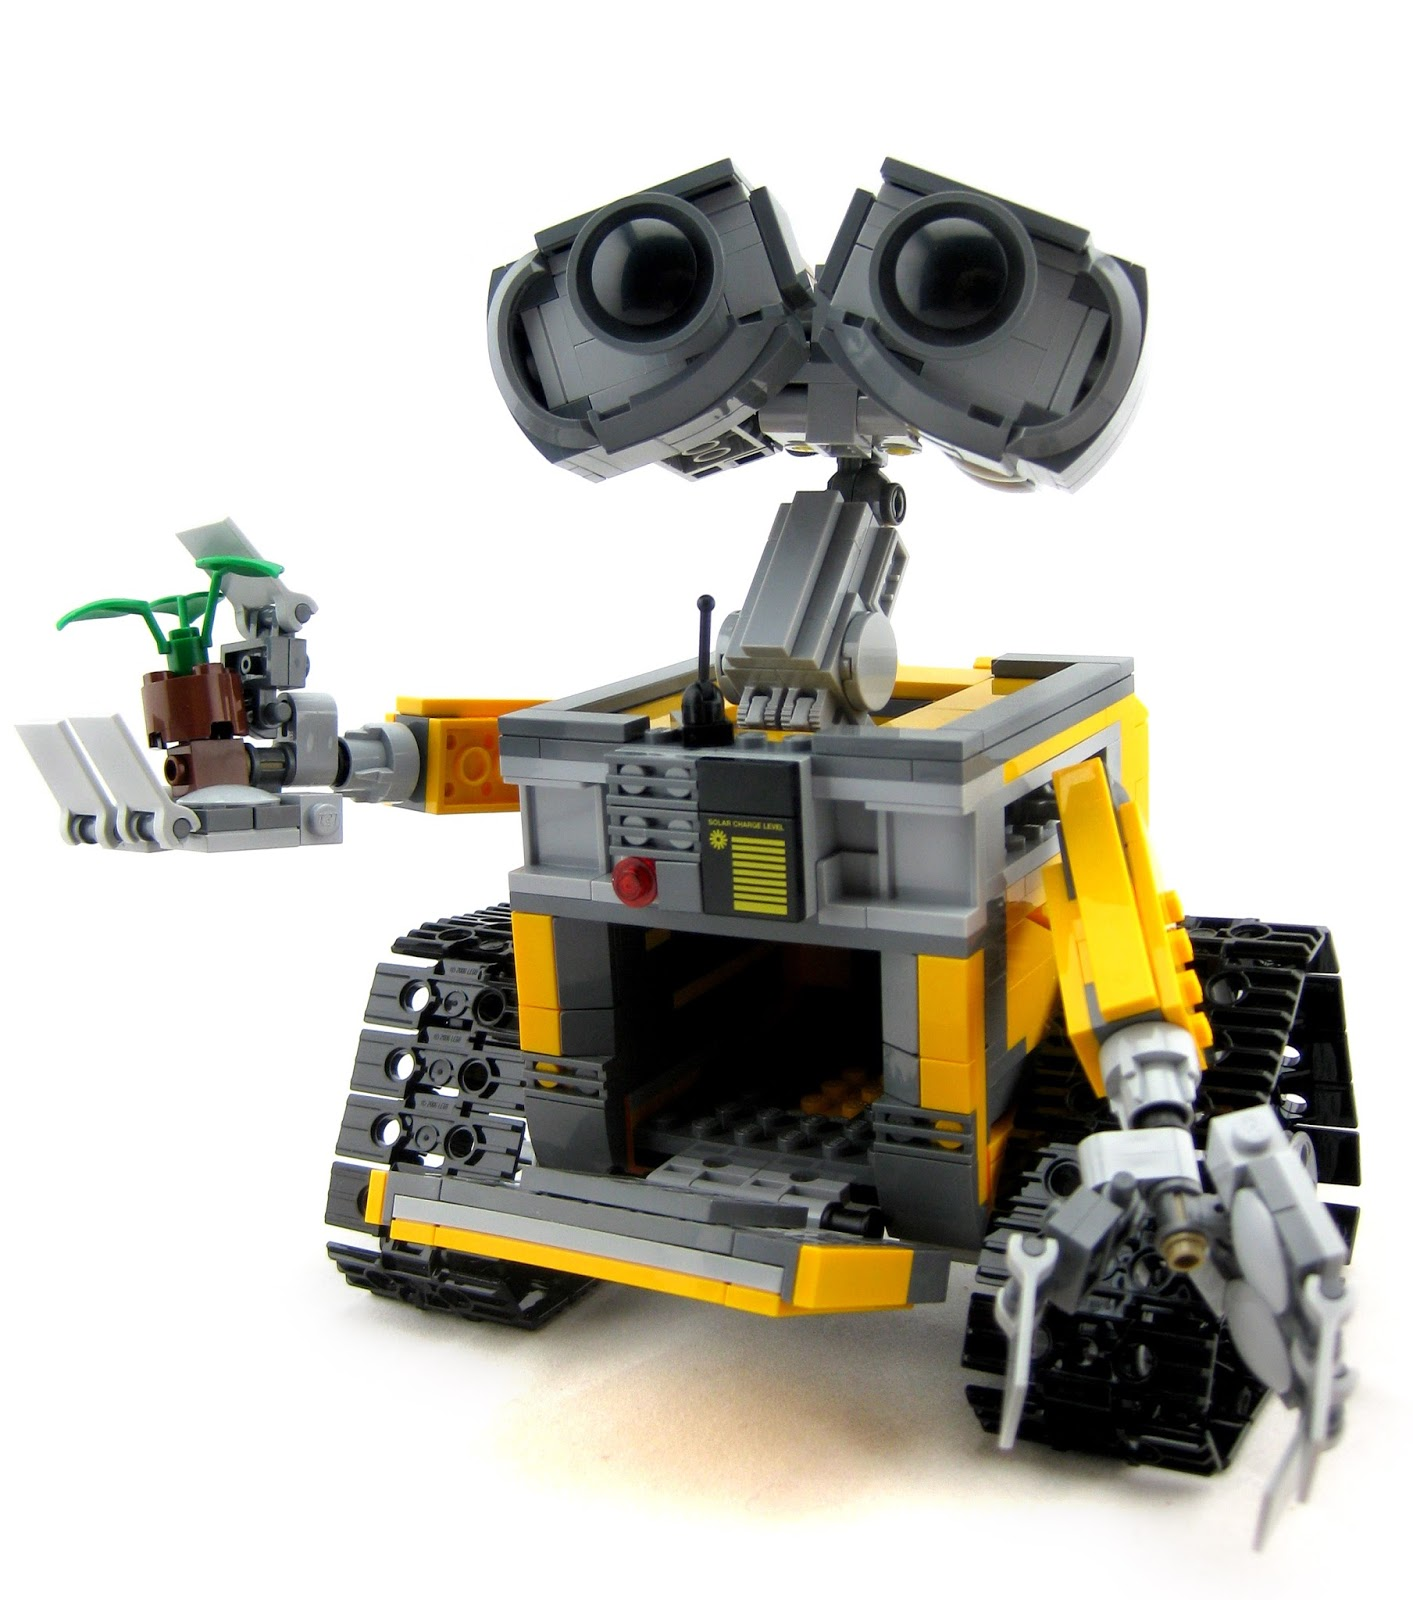 dan the pixar fan wall e lego set. Black Bedroom Furniture Sets. Home Design Ideas